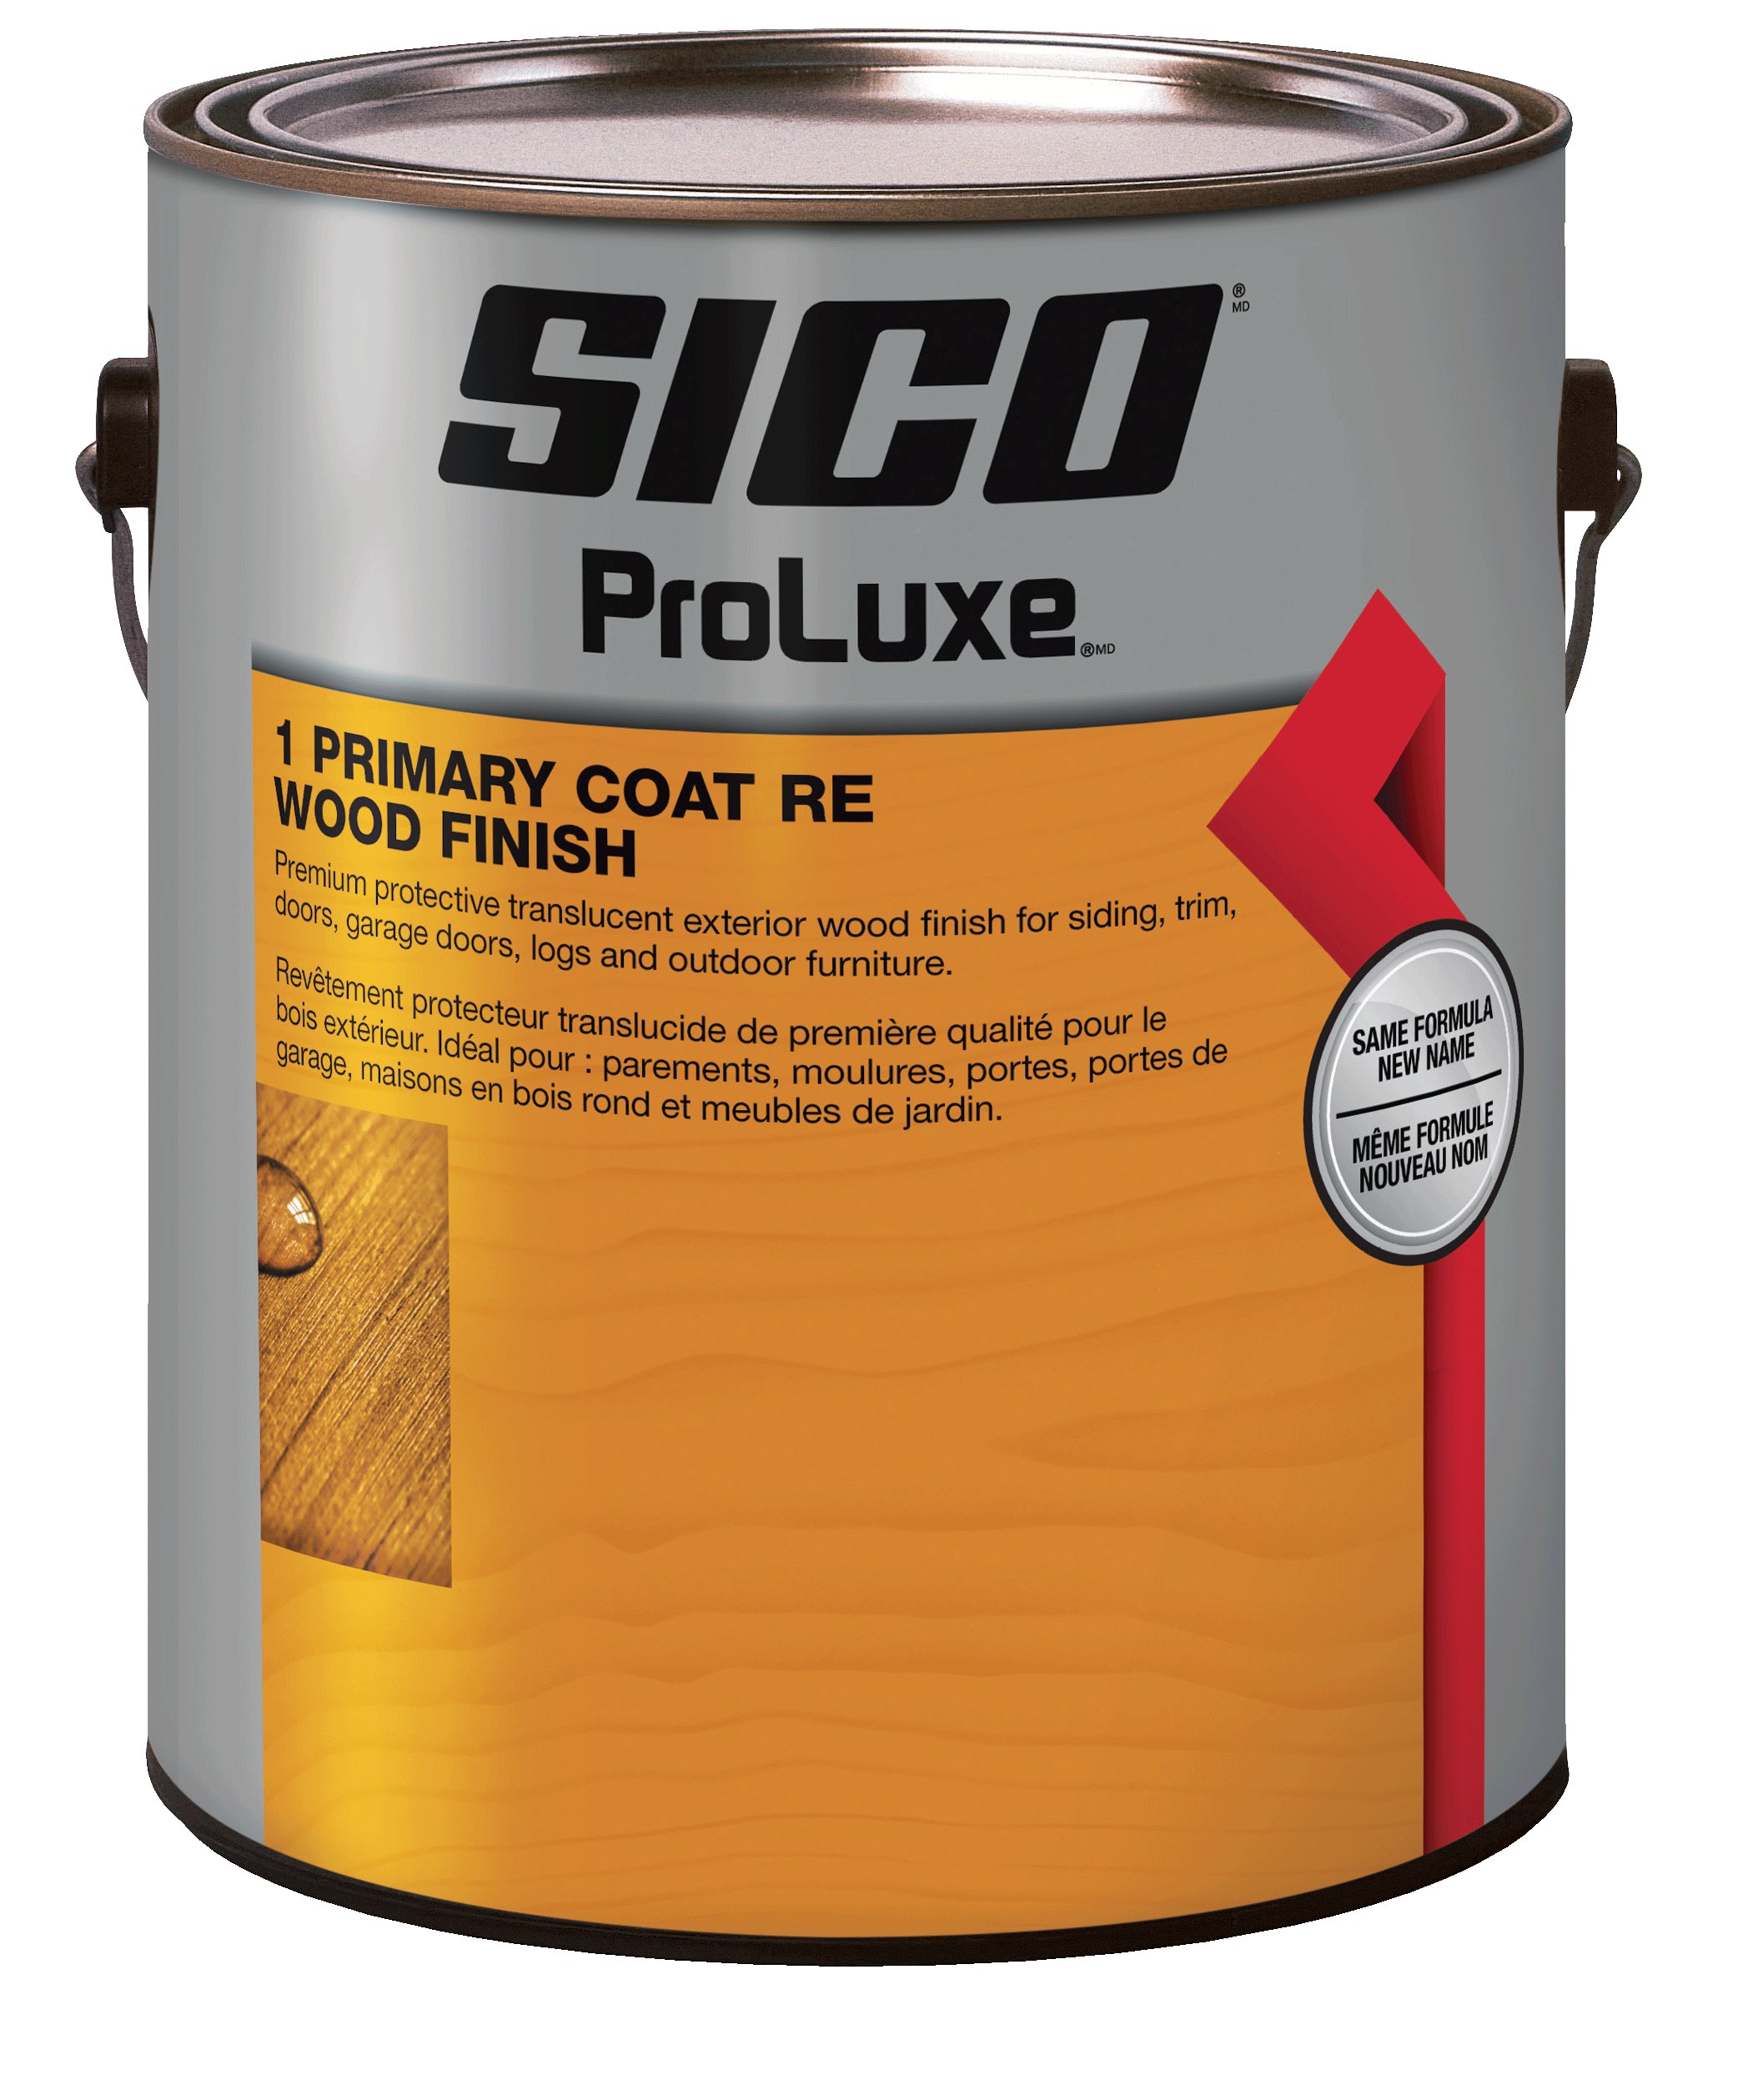 Teinture SICO Proluxe 1 Base Coat